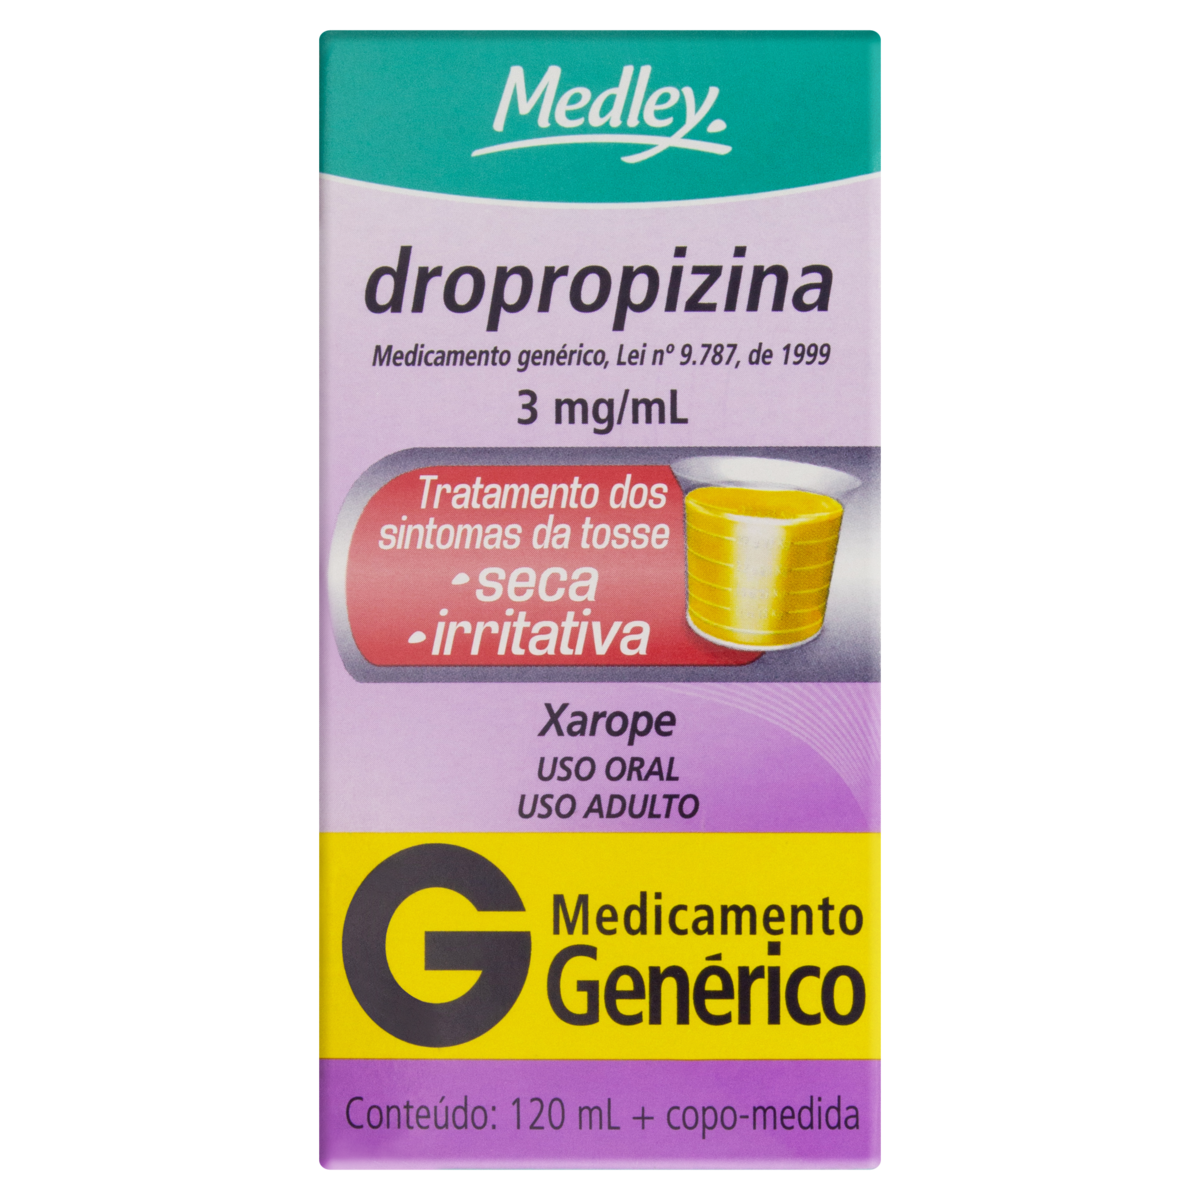 7896422506489 - XAROPE DROPROPIZINA 3MG/ML MEDLEY CAIXA 120ML + COPO MEDIDA